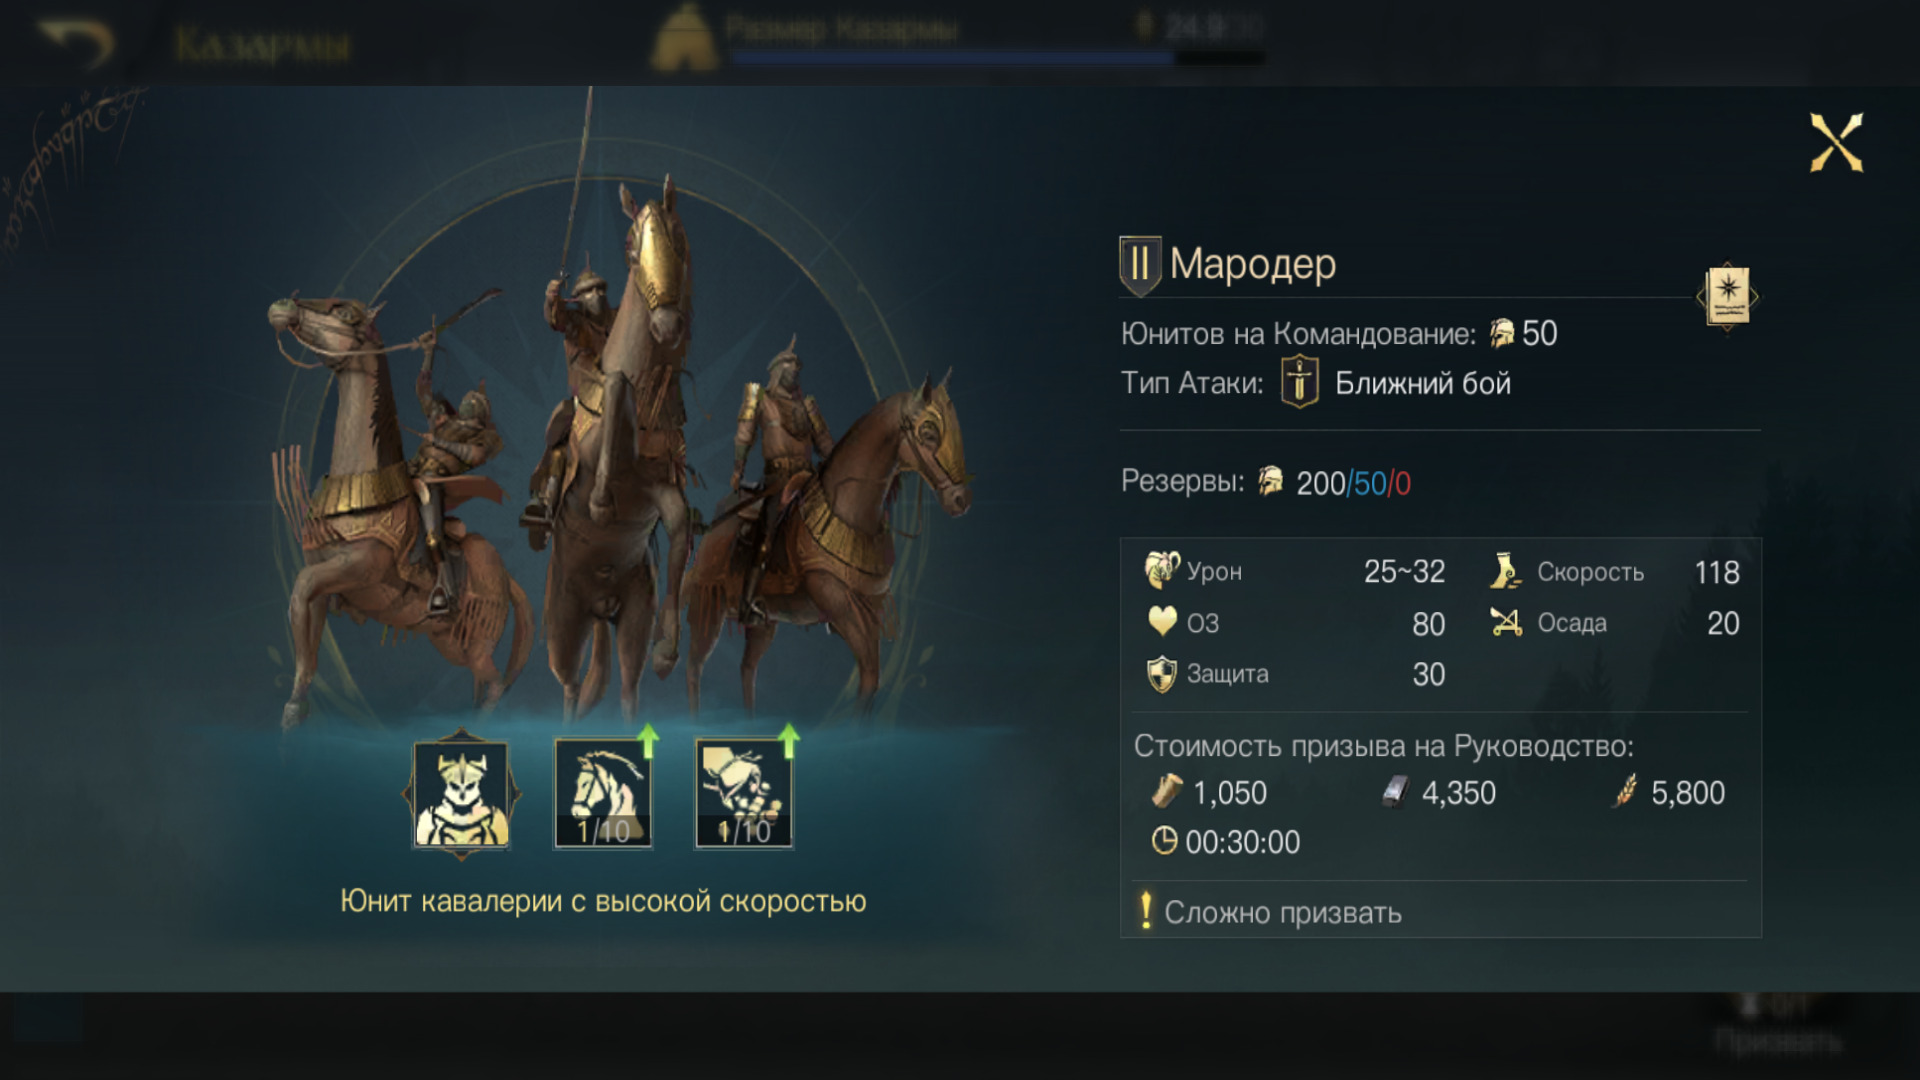 Геймплей - The Lord of the Rings: Rise to War